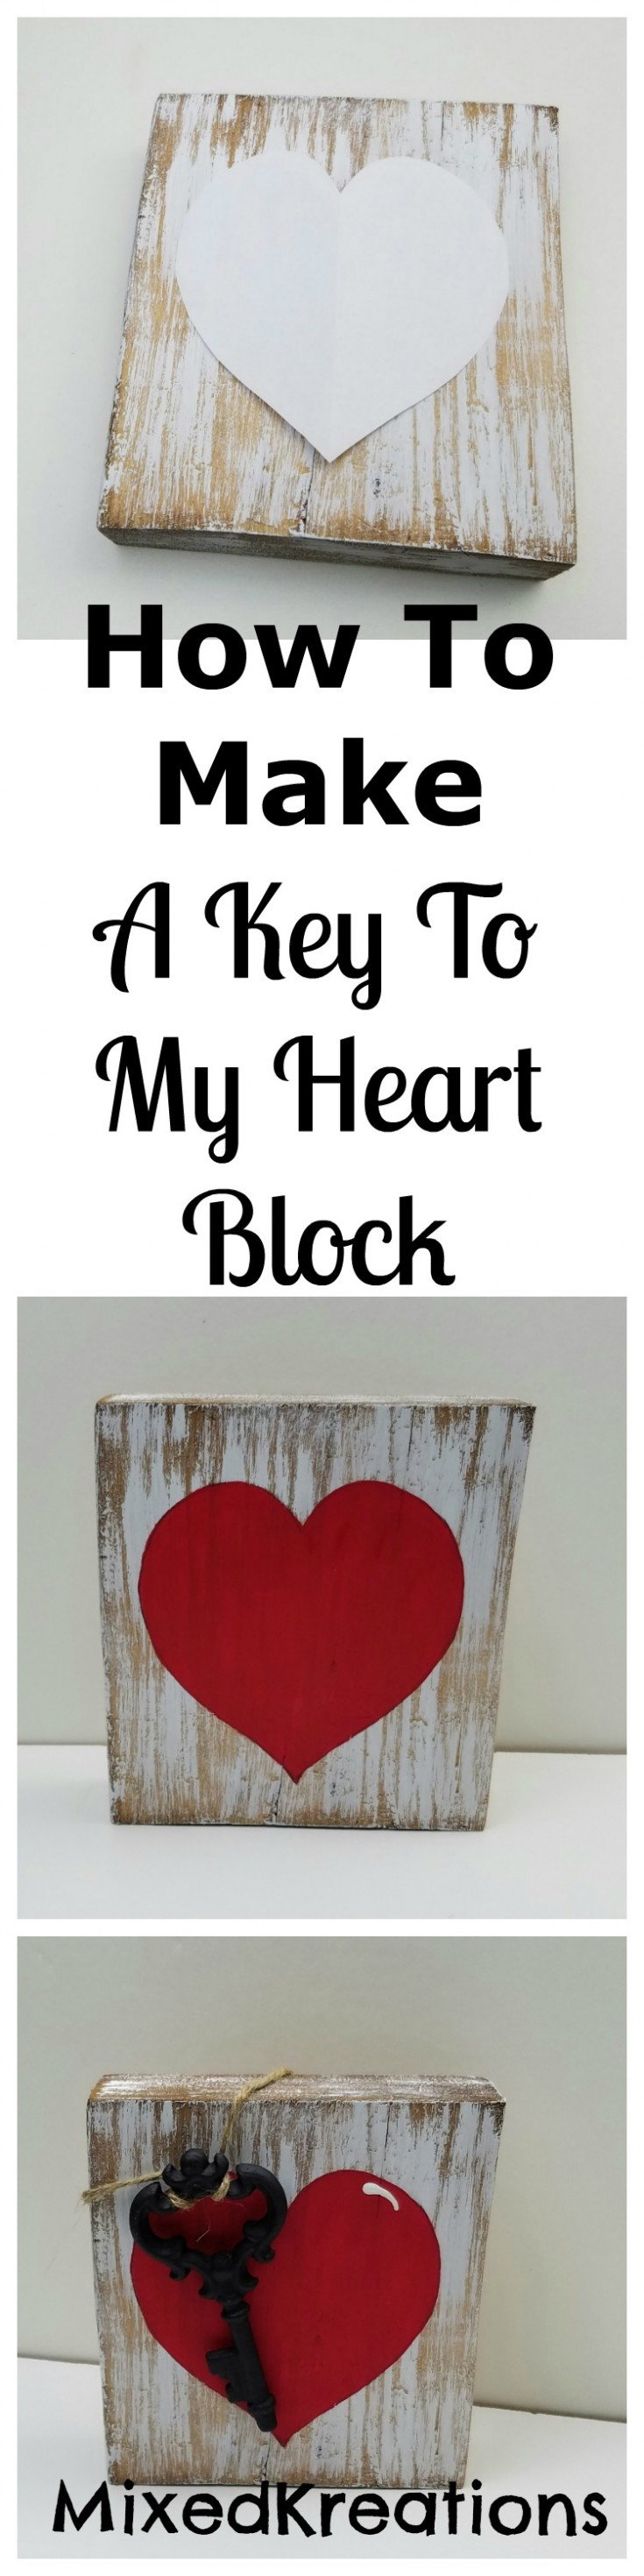 how to make a key to my heart block pinterest